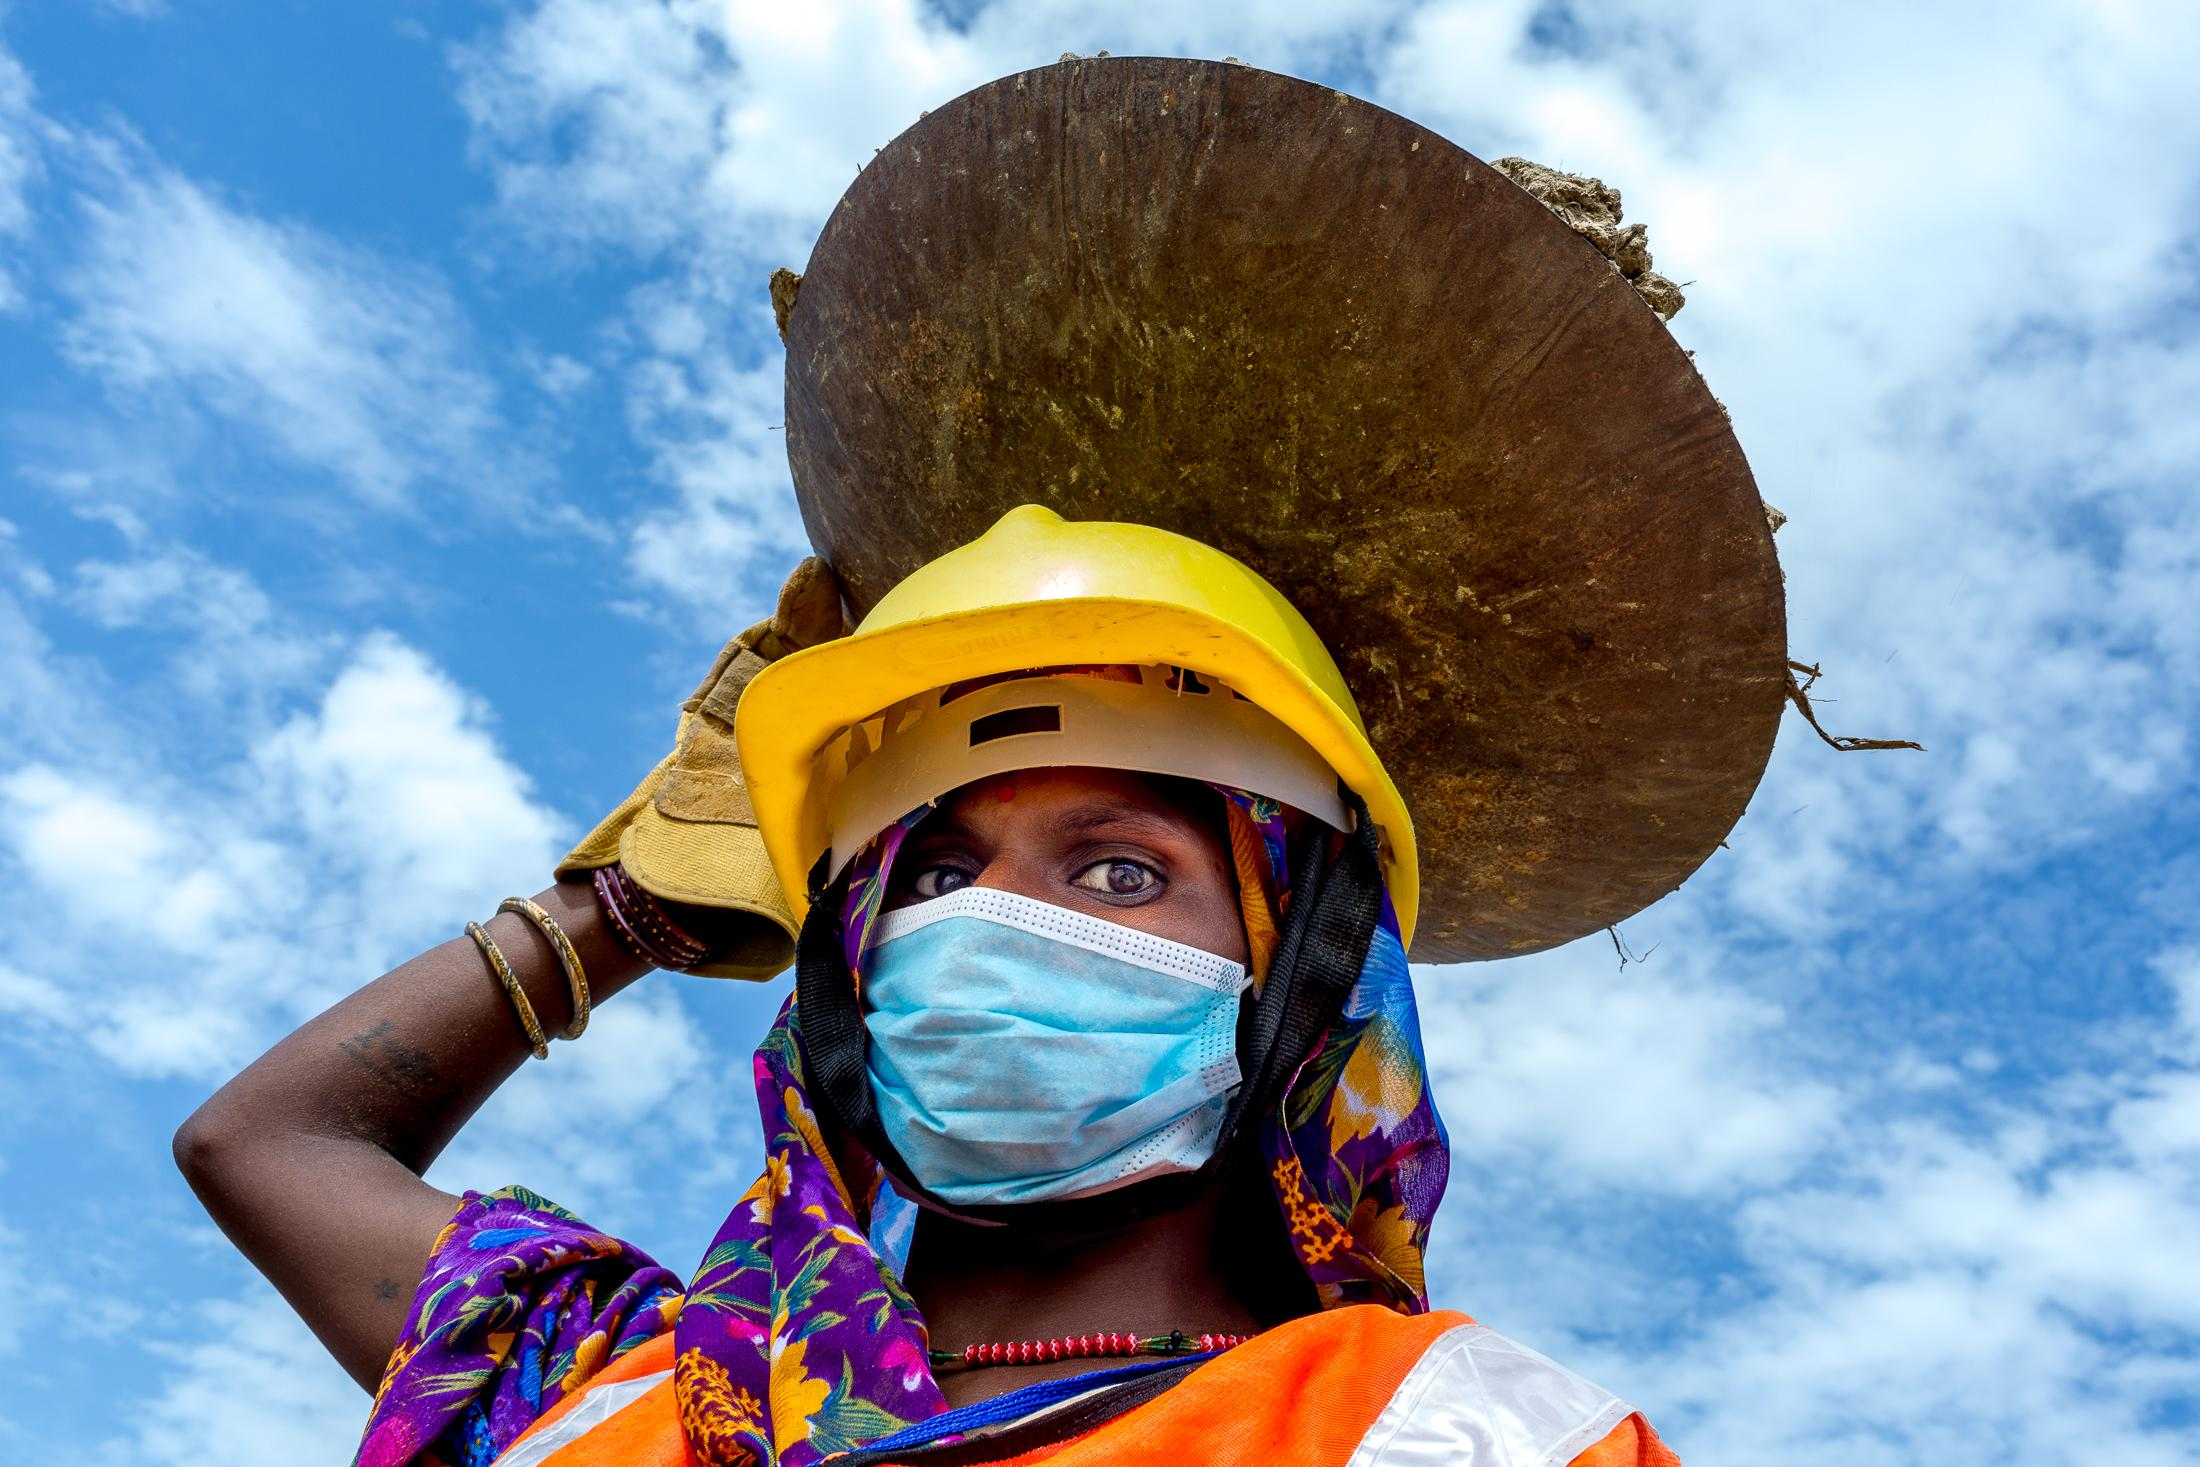 JANAKPUR, NEPAL - JULY 23, 2015: A Maithil woman stands holding a pot filled with sand that she collected while working as road maintenance staff on July 23, 2015 near Janakpur, Nepal. Traditionally, women from the Maithil community have almost never worked in official positions or in the formal economy being economic dependants in their families - first as daughters, then as wives and mothers, and often as widows. Their labor is in service to their husbands' families. But for years, Maithili women have been making strides to gain independence, helped by projects aimed at providing them with income-earning opportunities outside the home. Photo: © Omar Havana for ILO